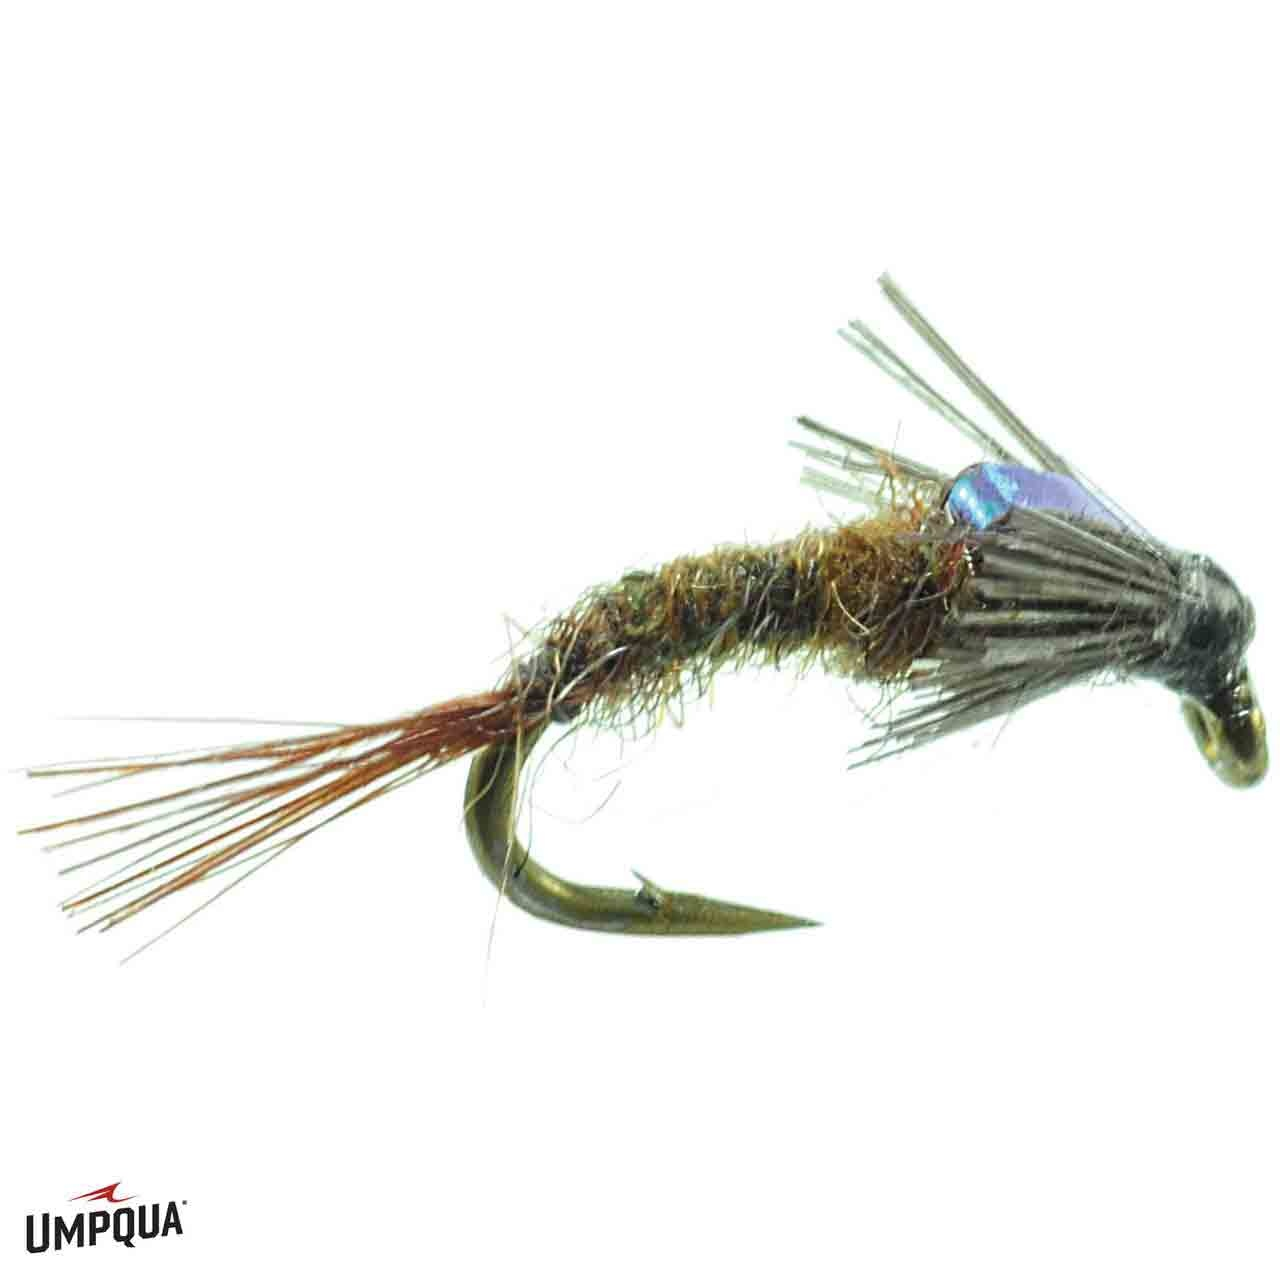 Umpqua Flashback Emerger Barr PMD